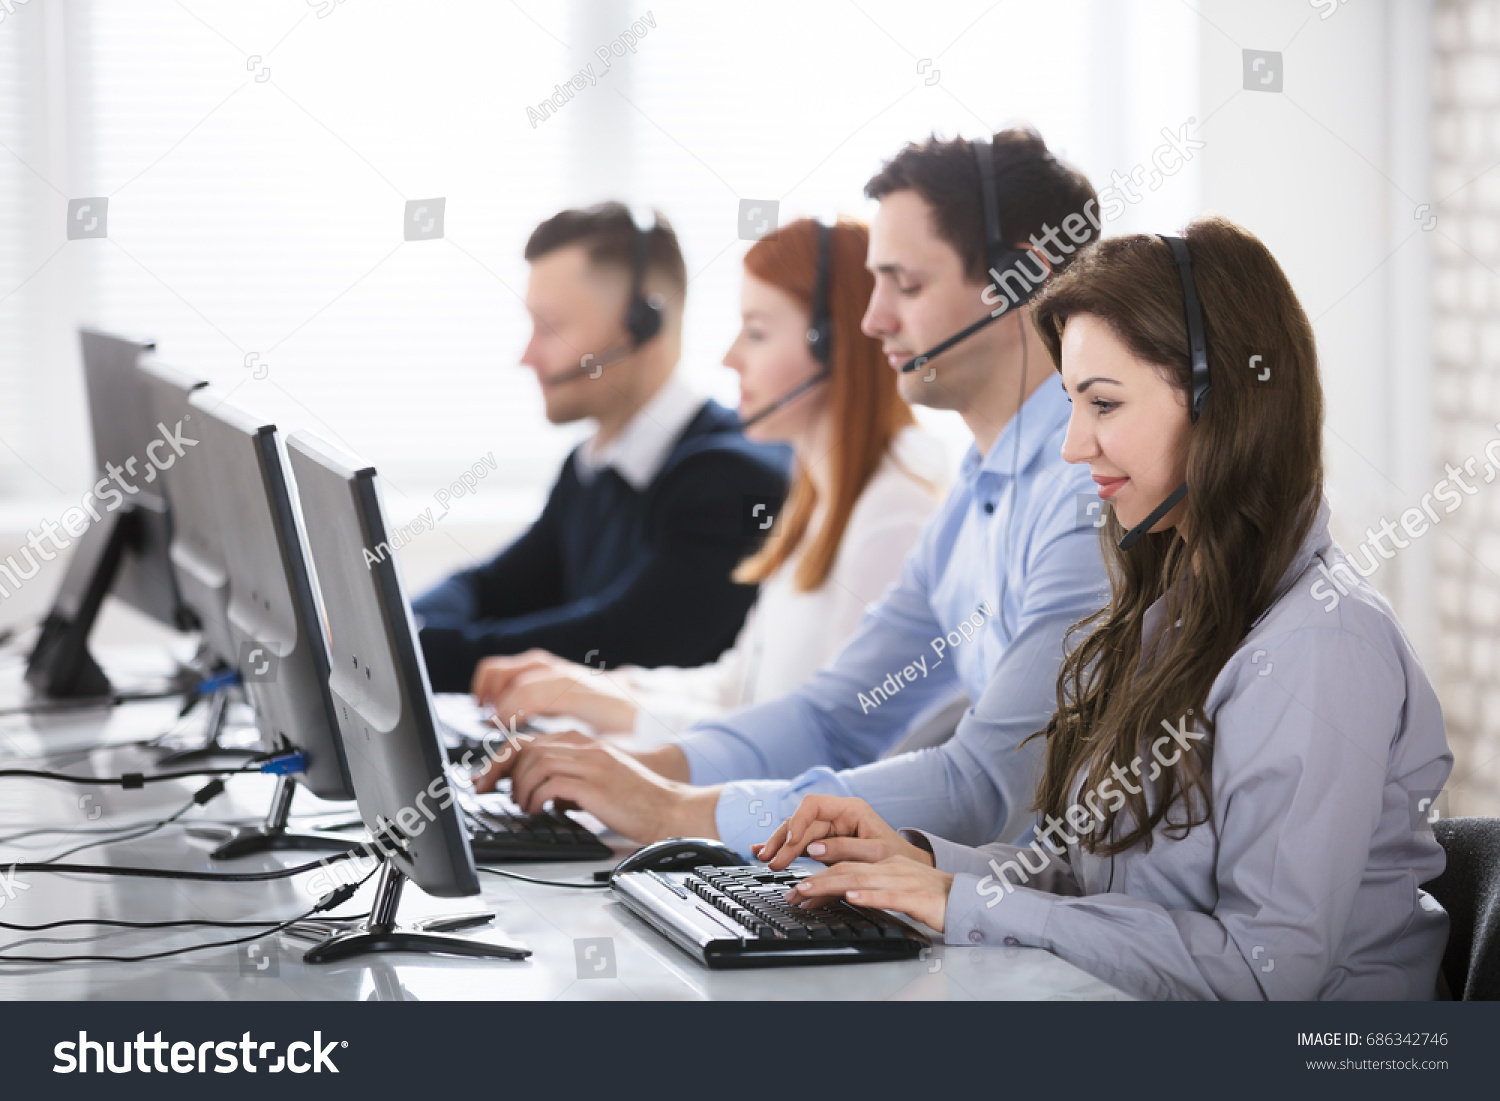 Stock Photo of tech support